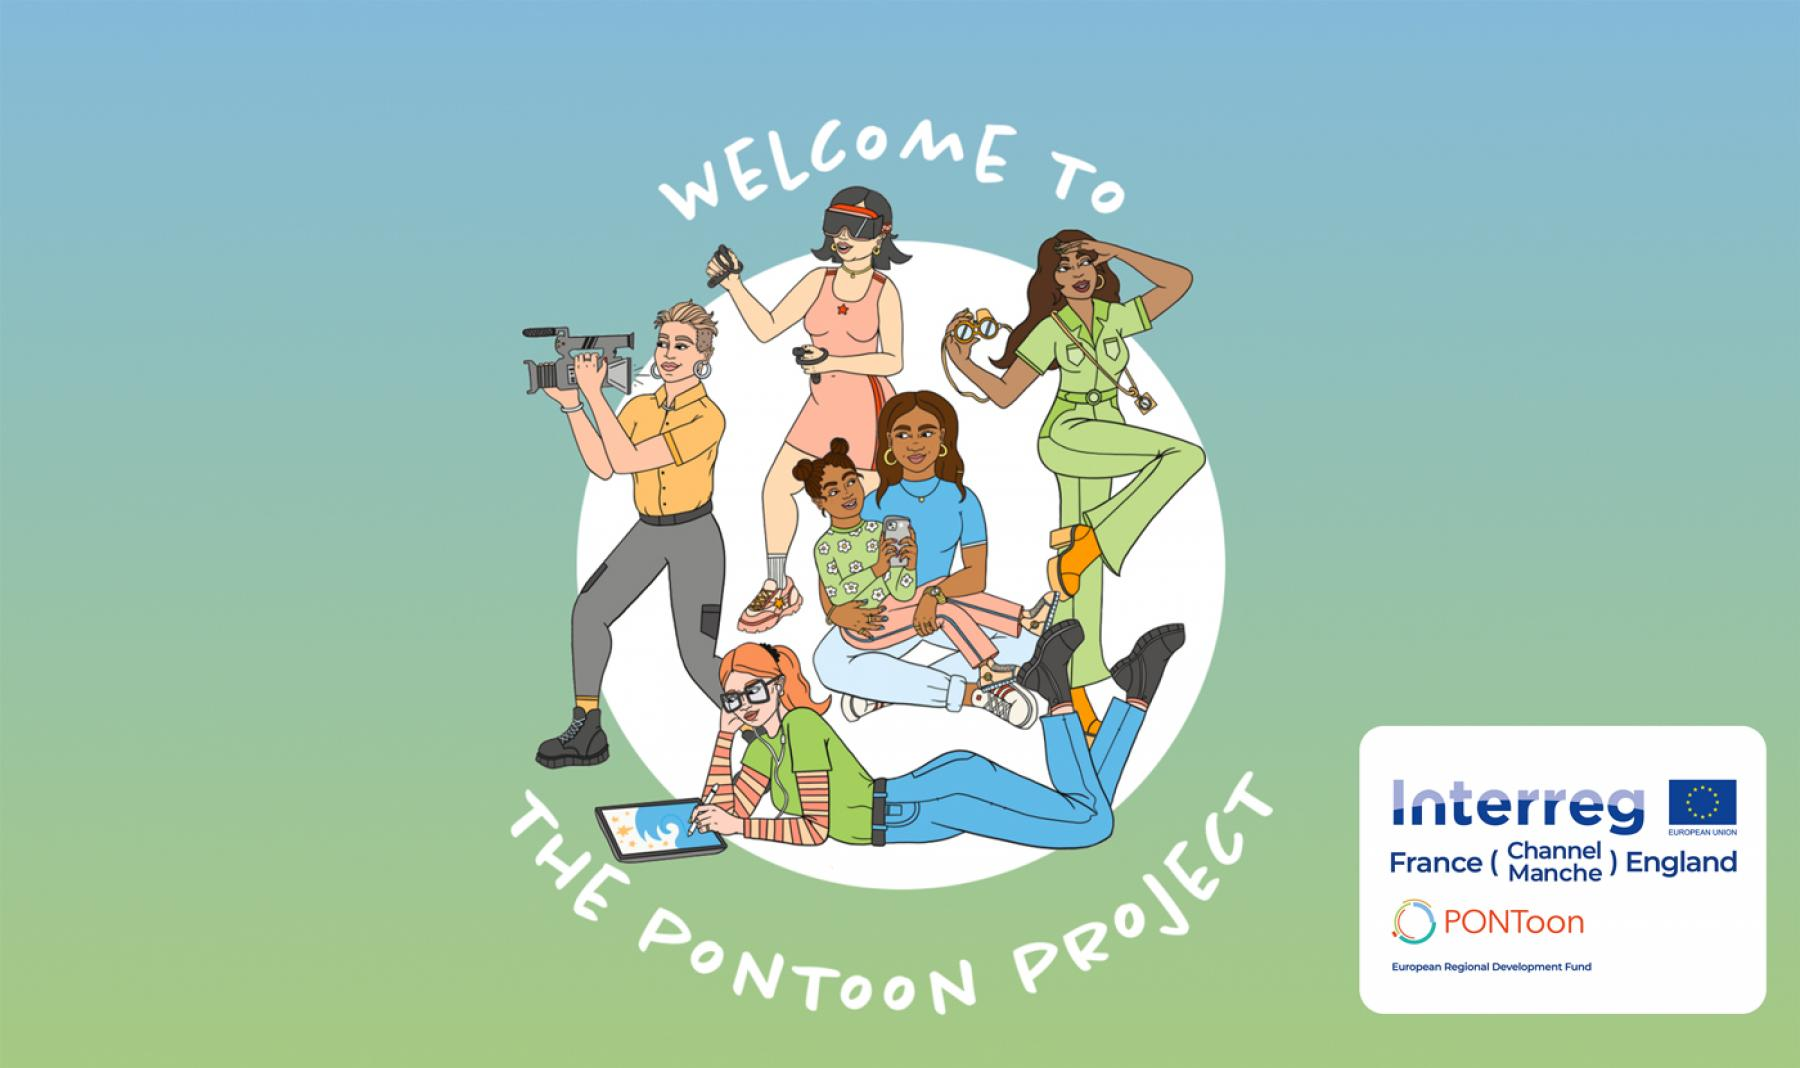 The PONToon Exhibition title screen featuring illustrations of women who have been involved in the project